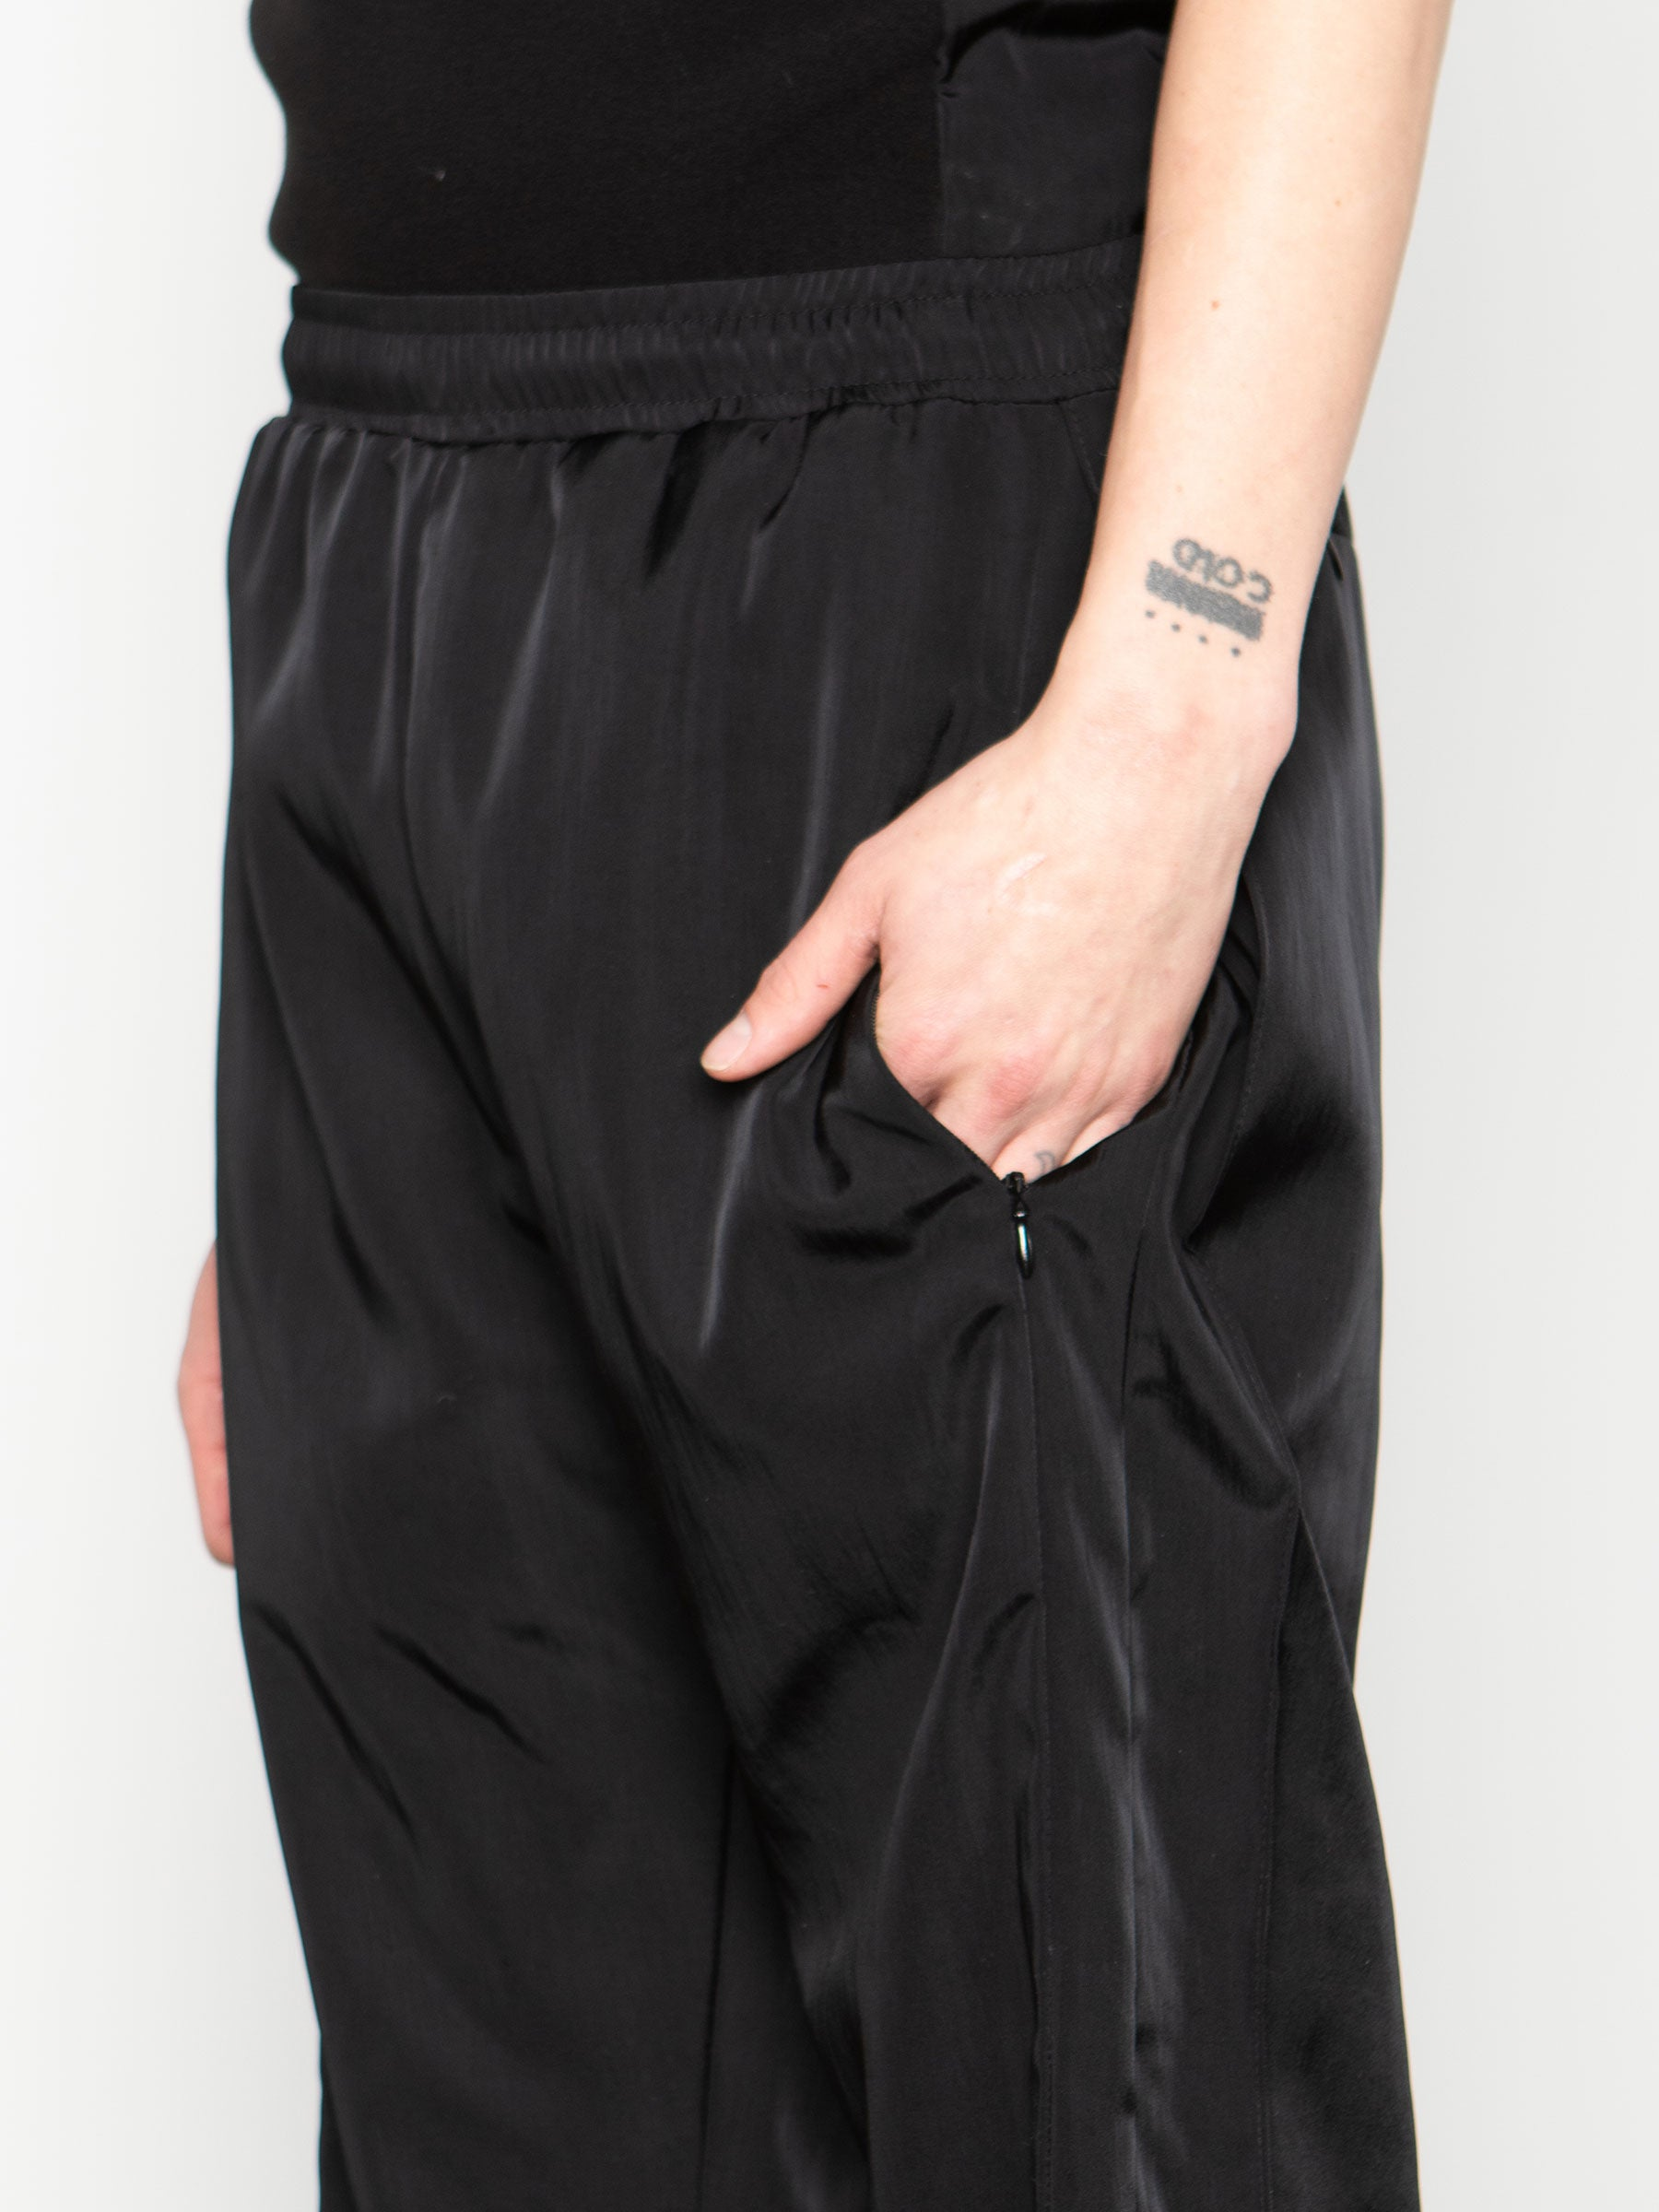 odd92 Shop Cottweiler Spring/Summer 2020 Menswear Black Caddie Track Pants - 4